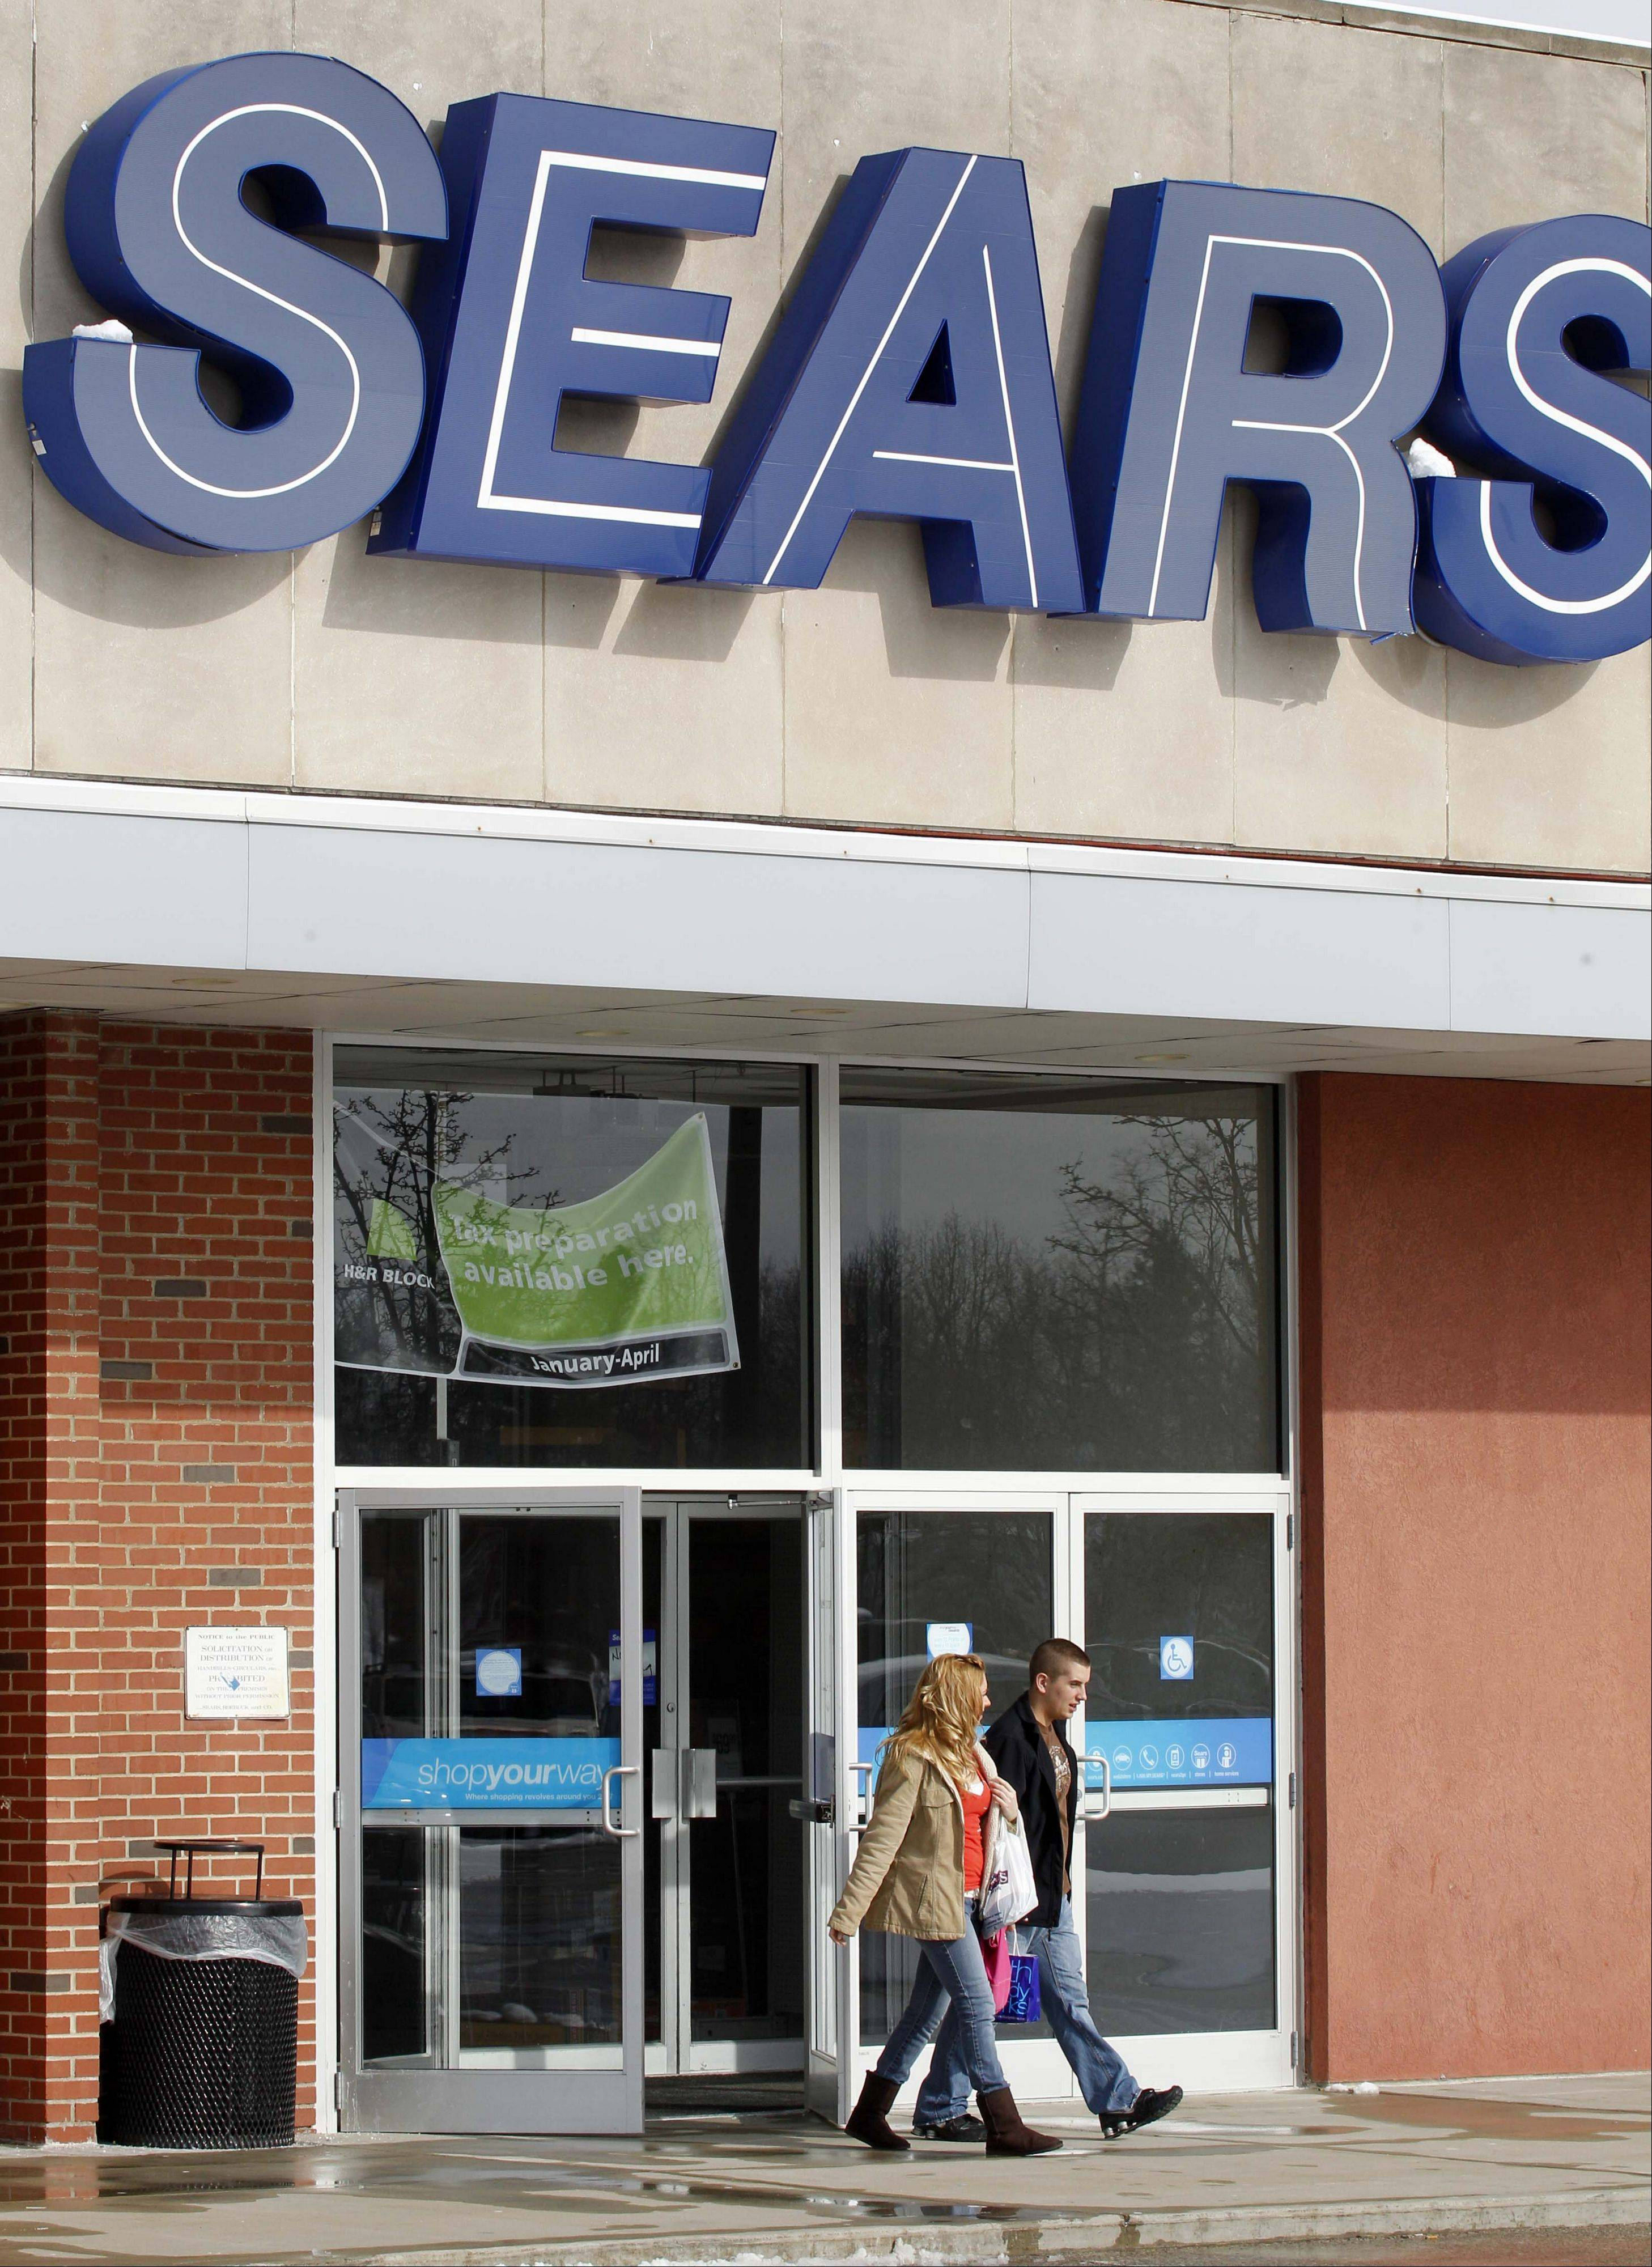 When Sears fell off the Standard & Poor�s 500 Index on Thursday, it led to a fall in its stock price.